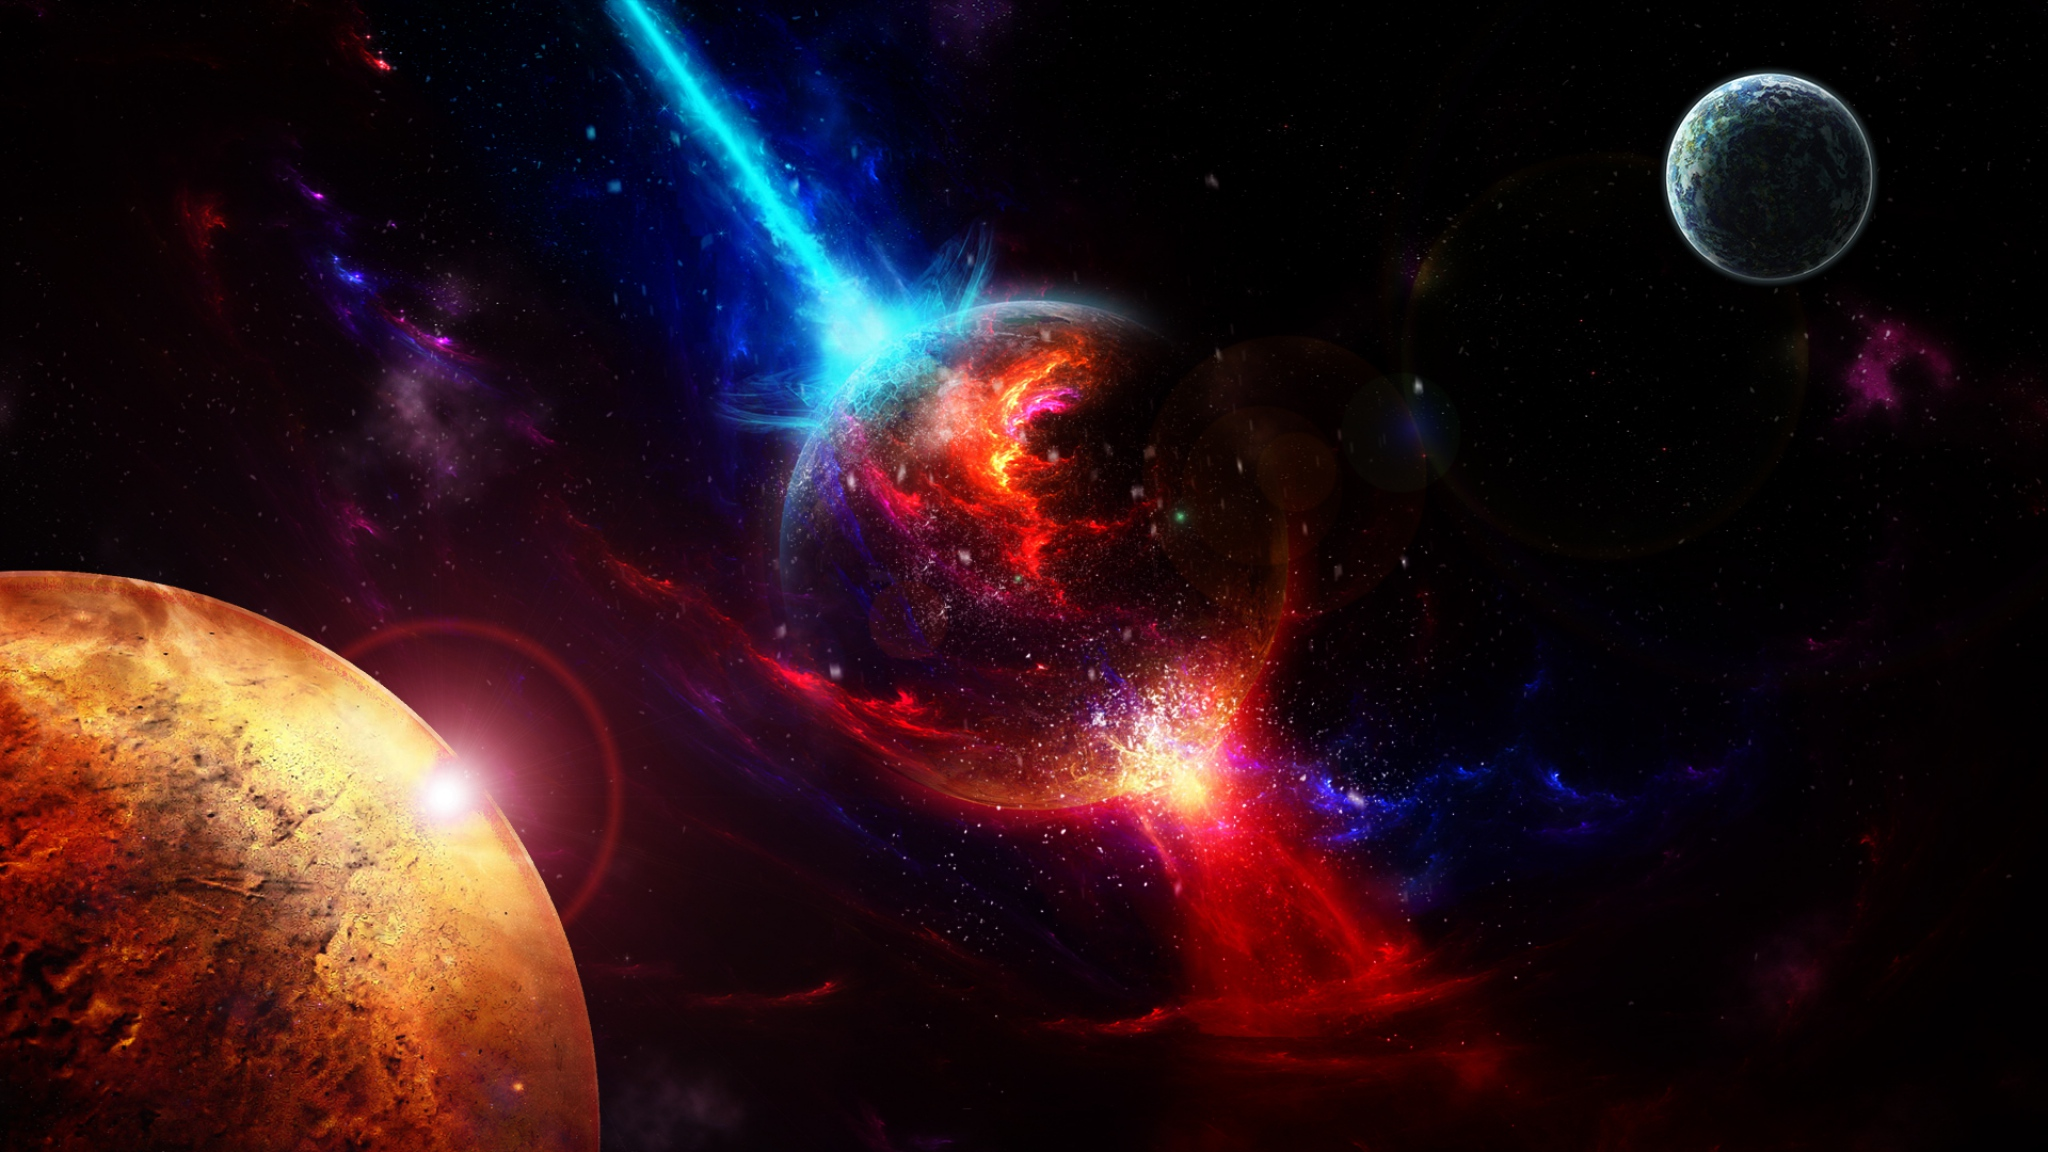 Download Wallpaper 2048x1152 Space Planets Takeoff Explosion HD HD 2048x1152